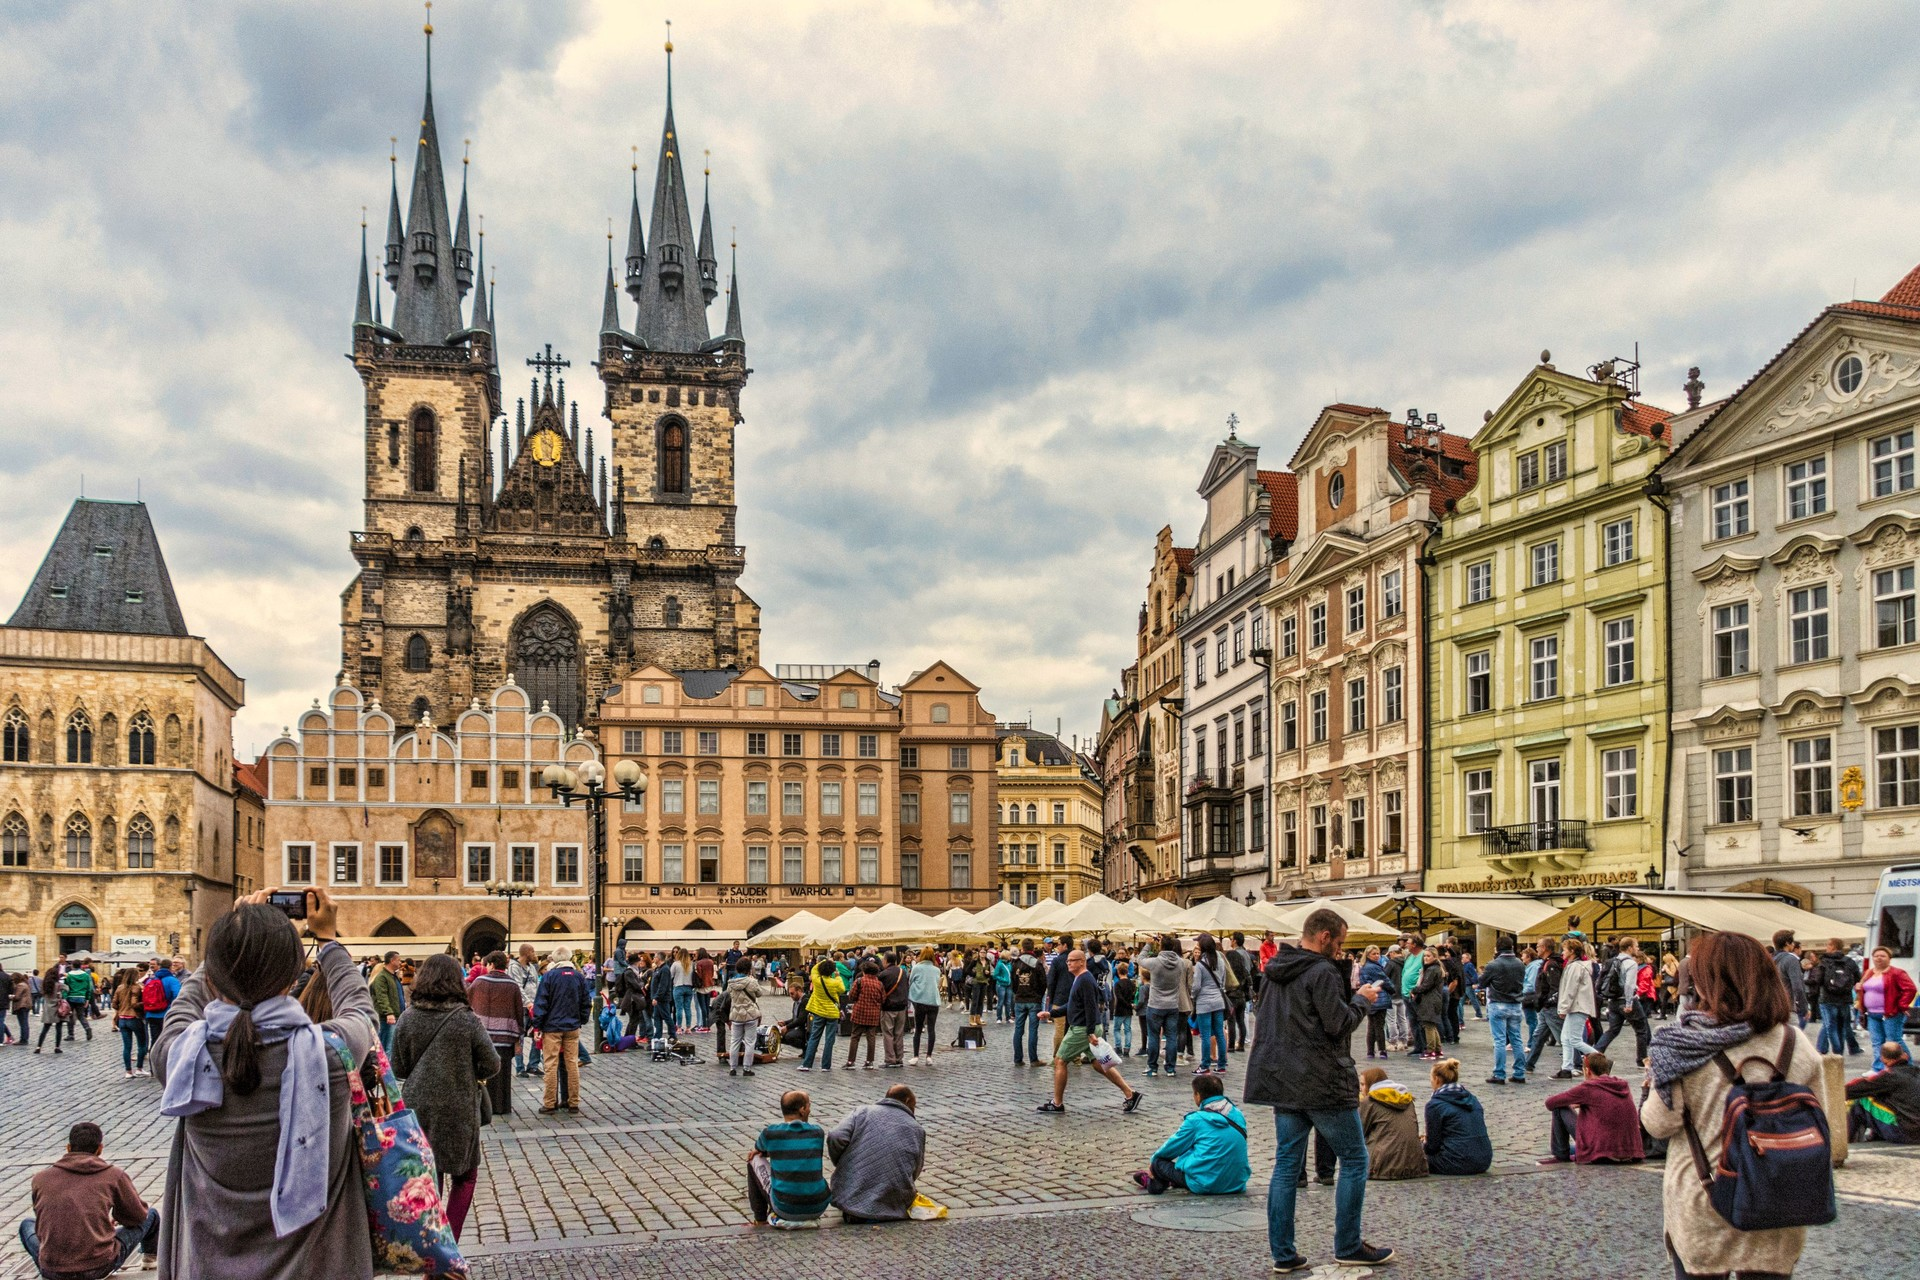 Prague, Czech Republic:  15 grams of Cannabis for personal use is overlooked